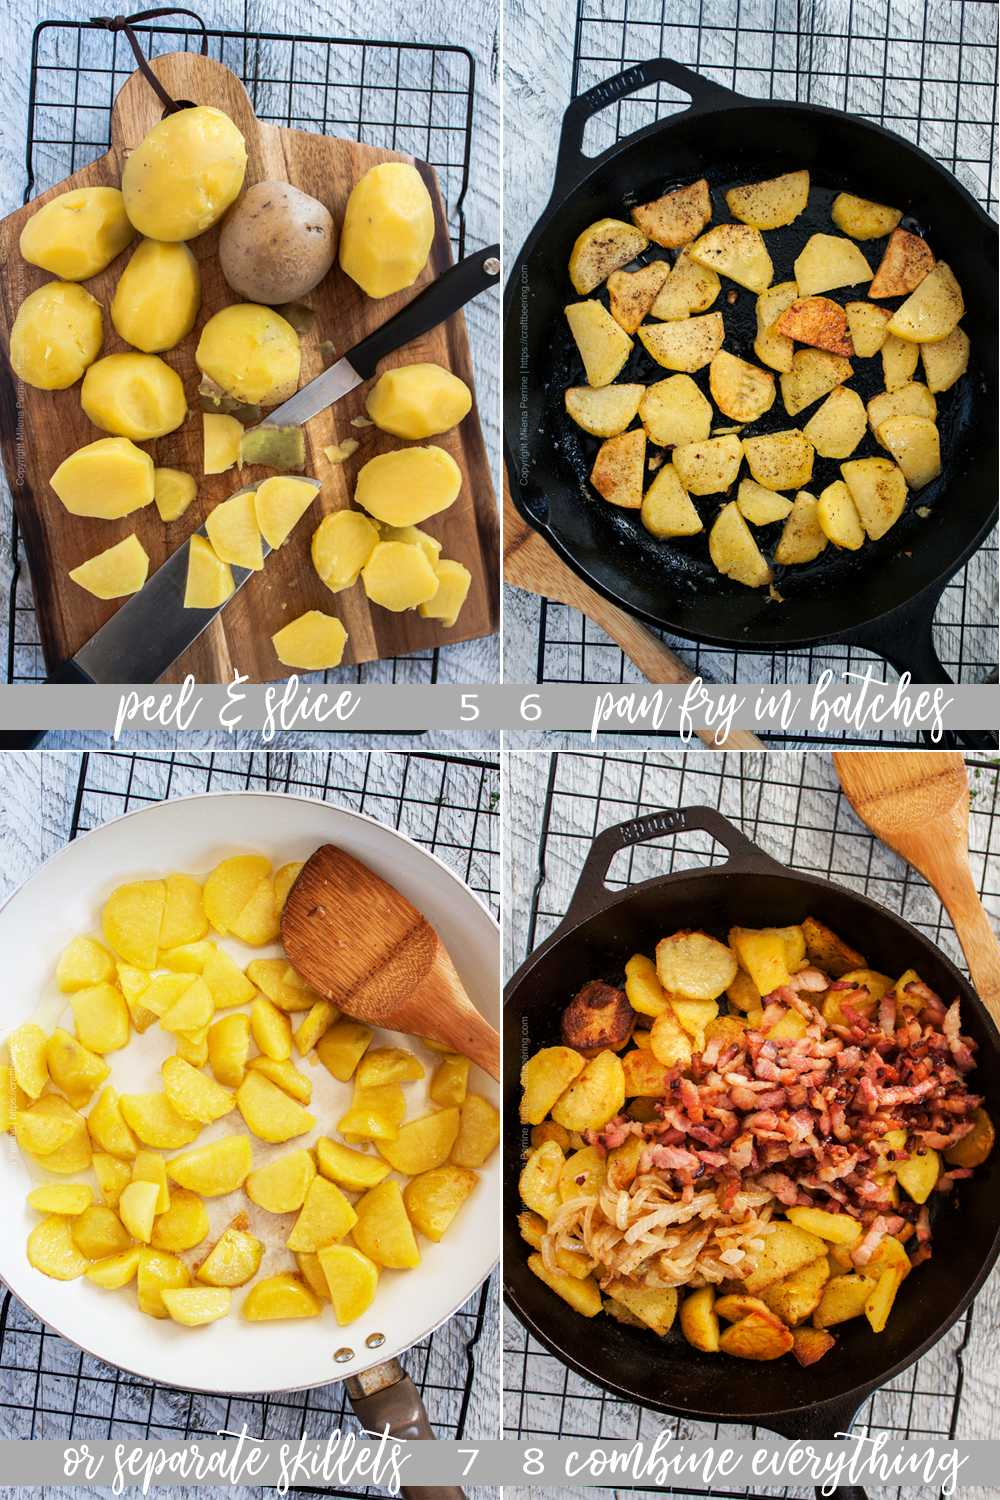 How to prepare German fries with bacon and onion - 2